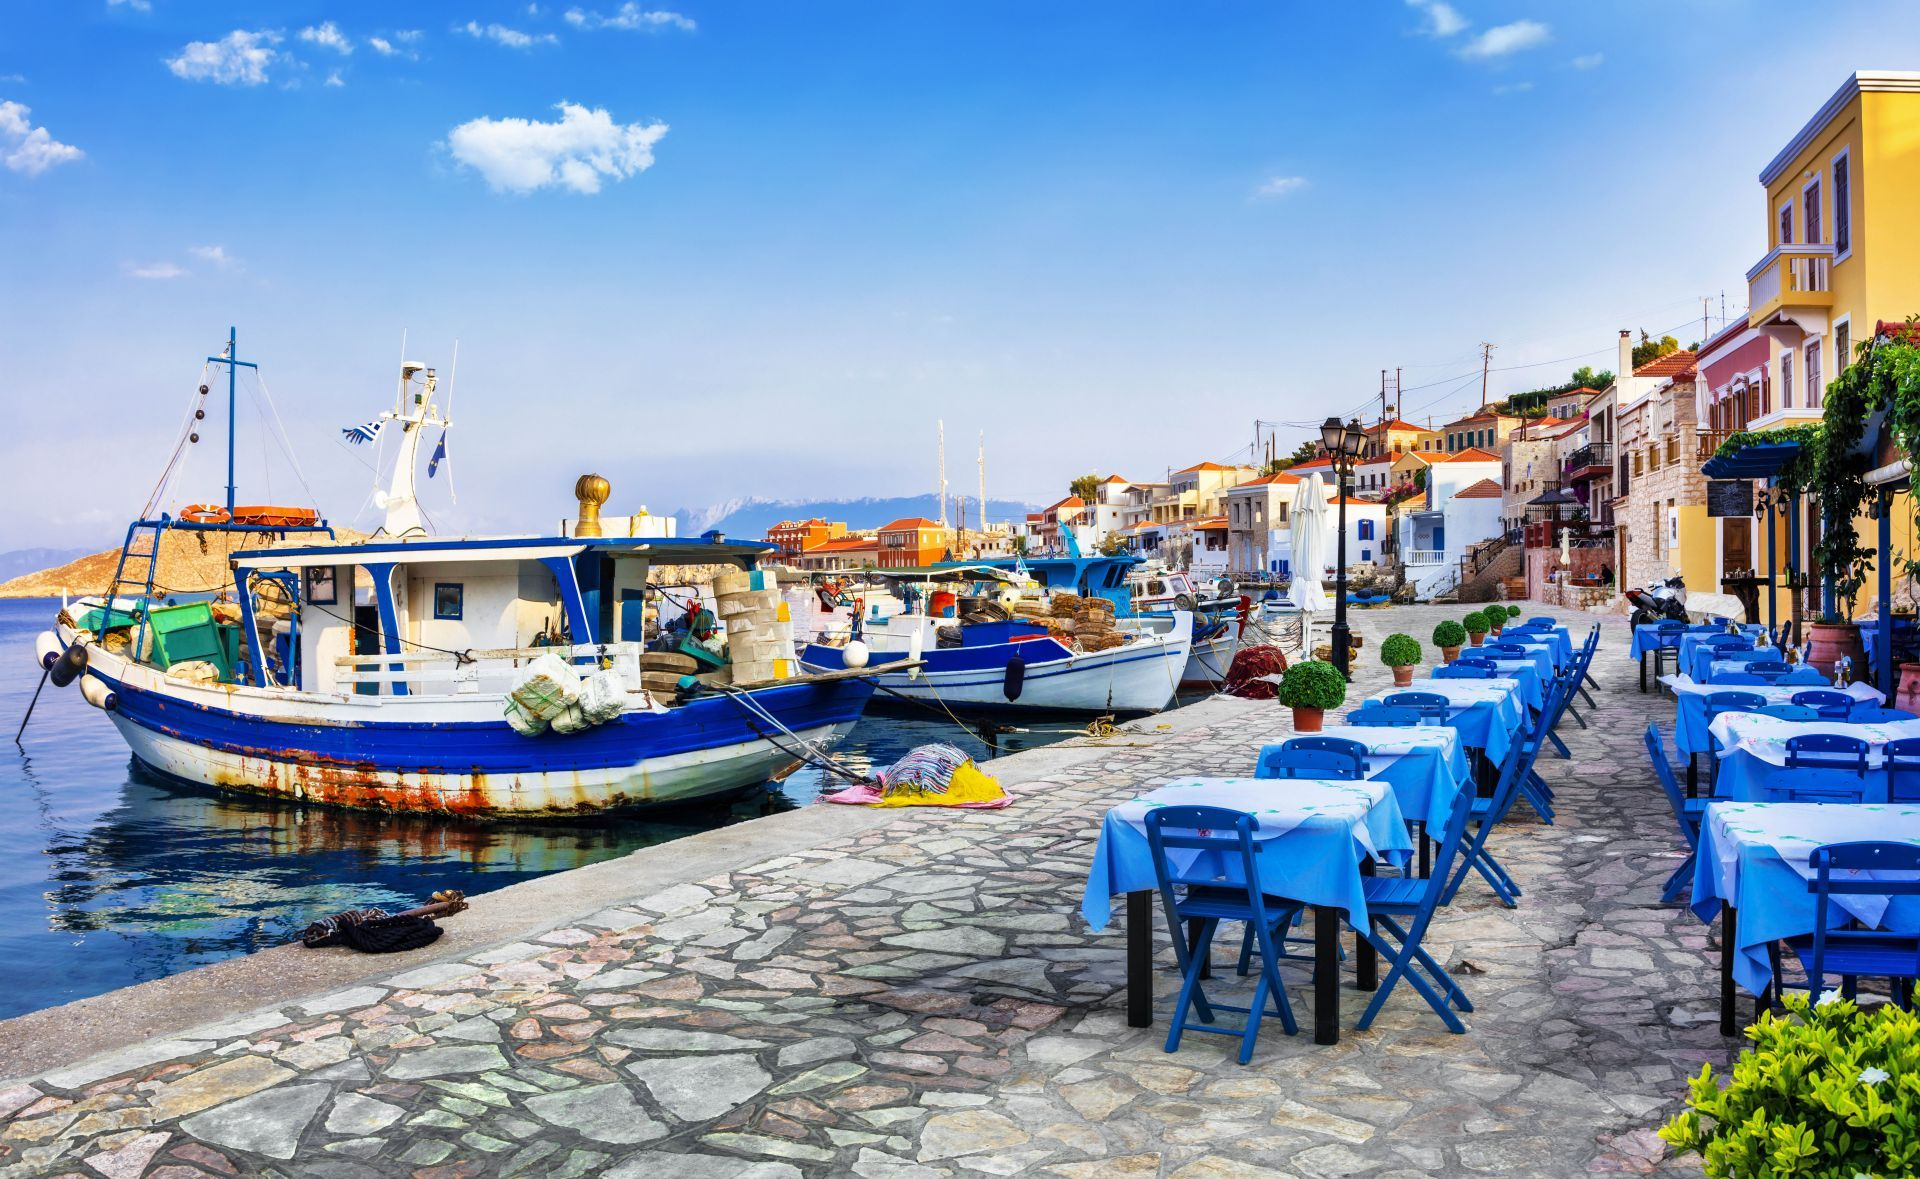 Places to eat and drink in Halki